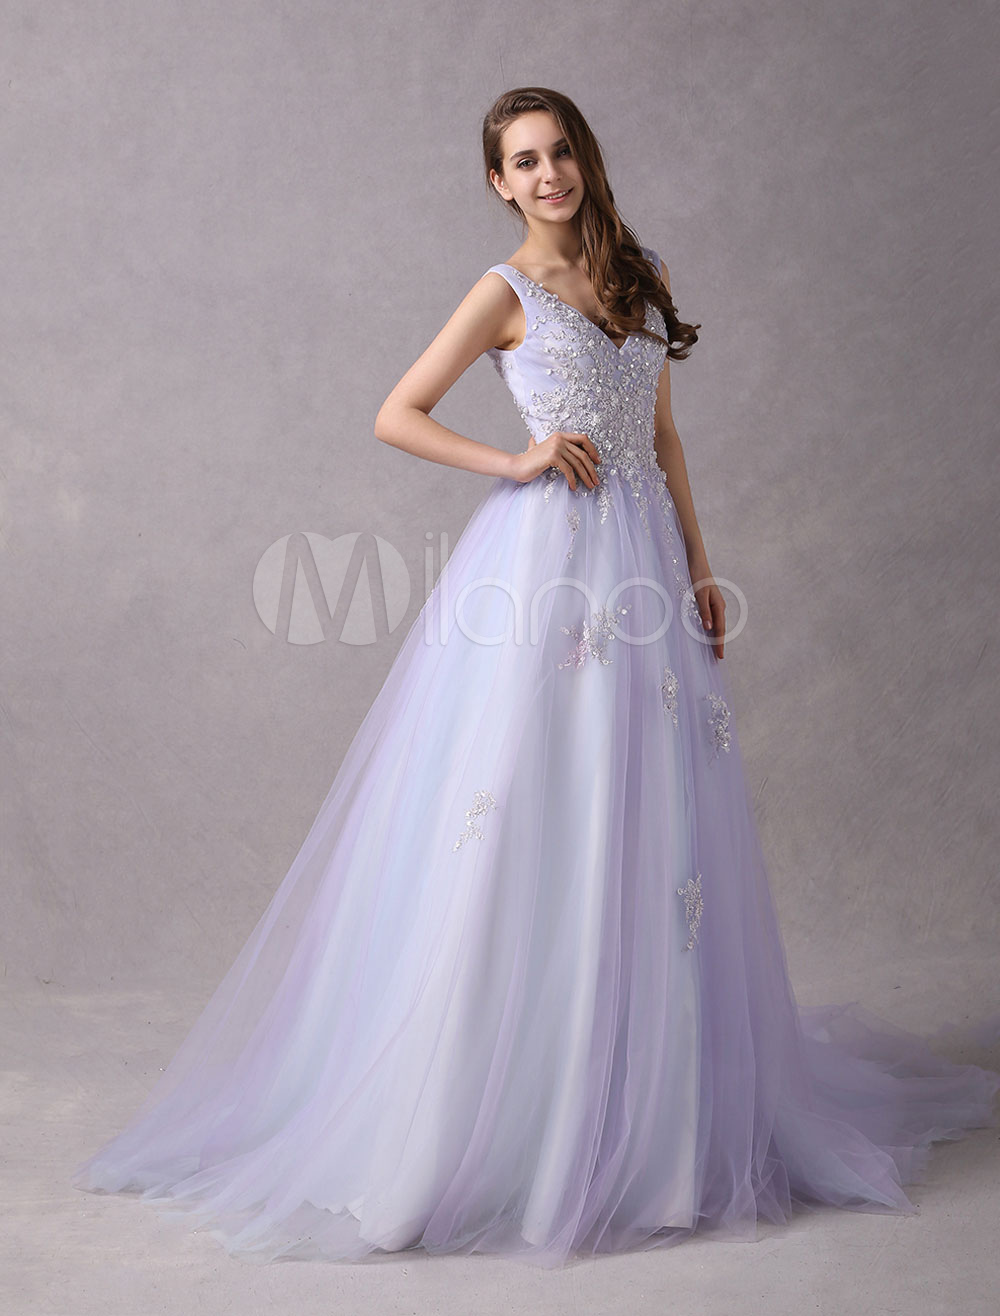 Prom Dresses Long Lilac Lace Applique V Neck Backless Beading Princess Prom Gown With Train